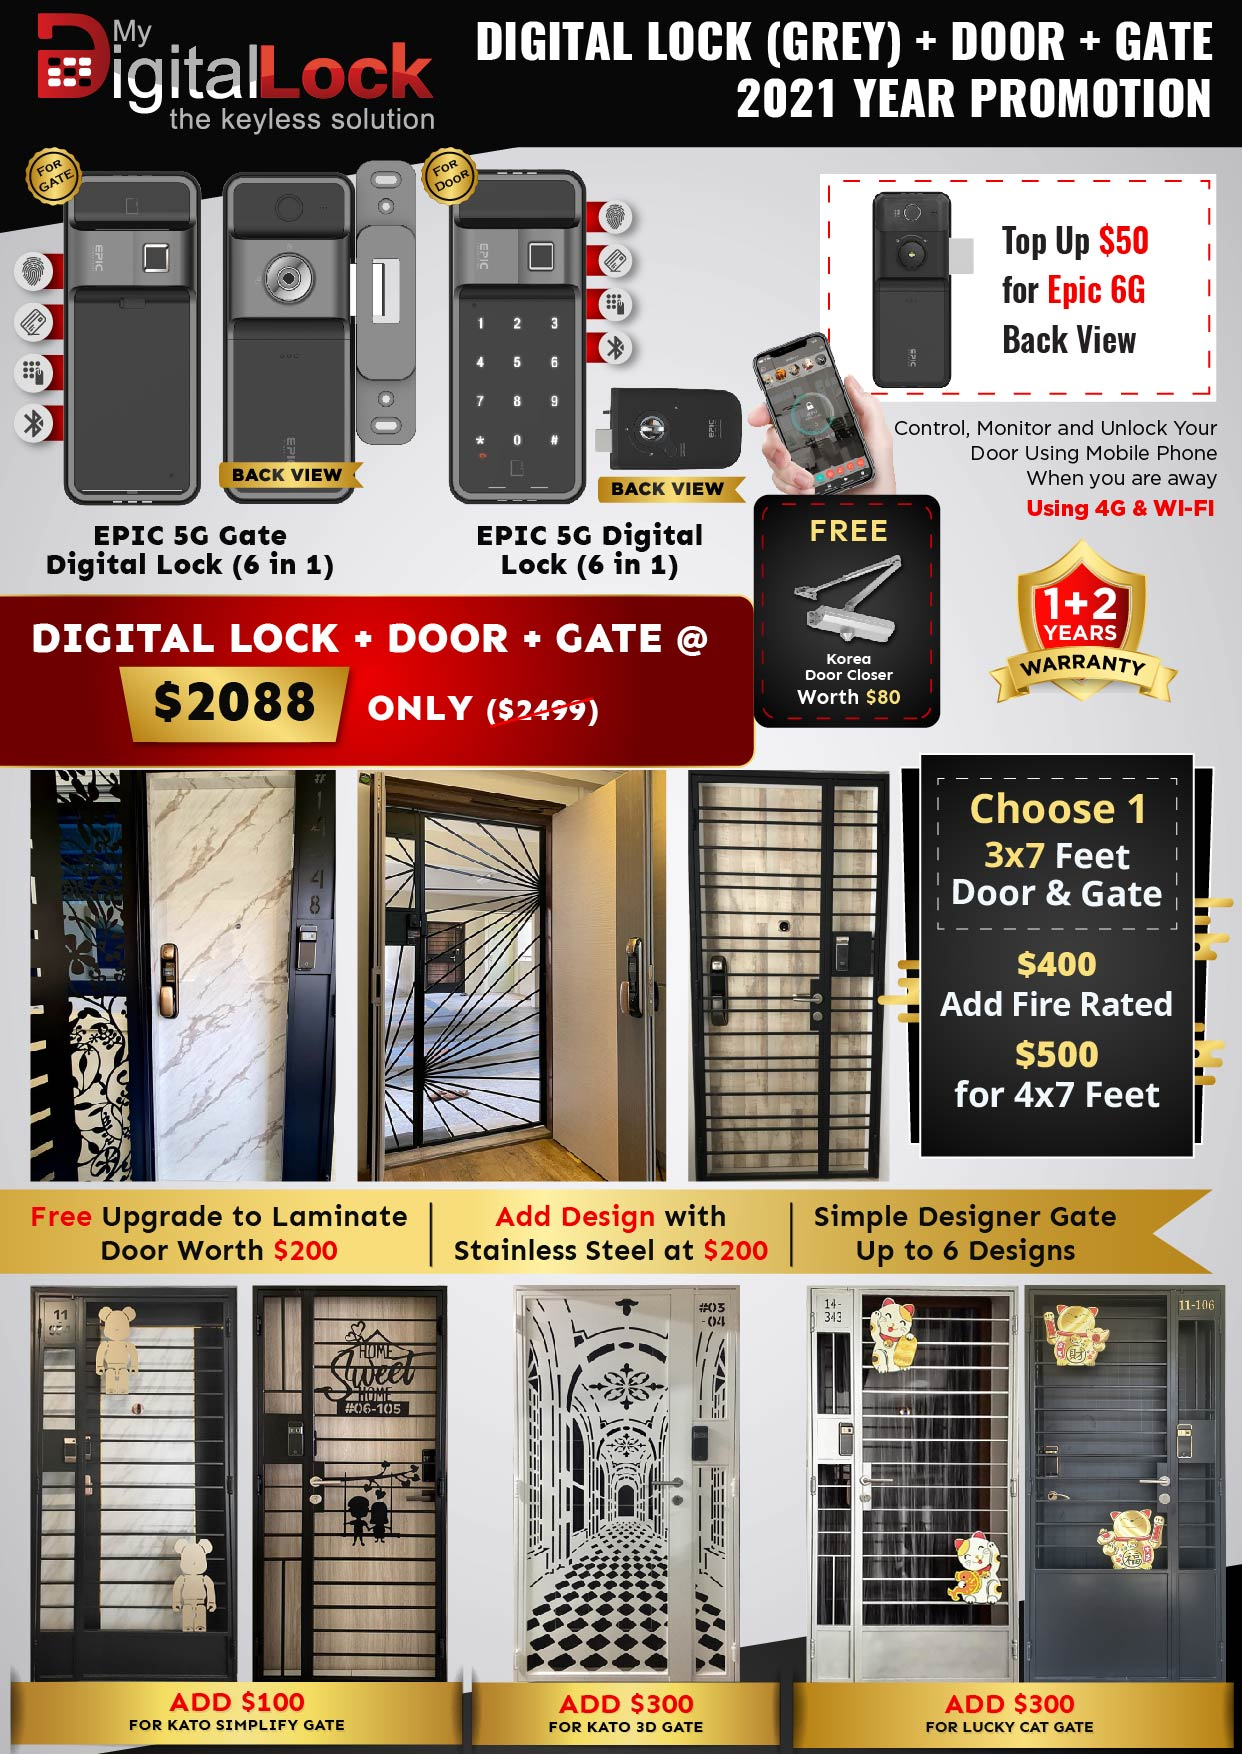 Digital-Lock-Grey-and-Door-and-Gate-2021